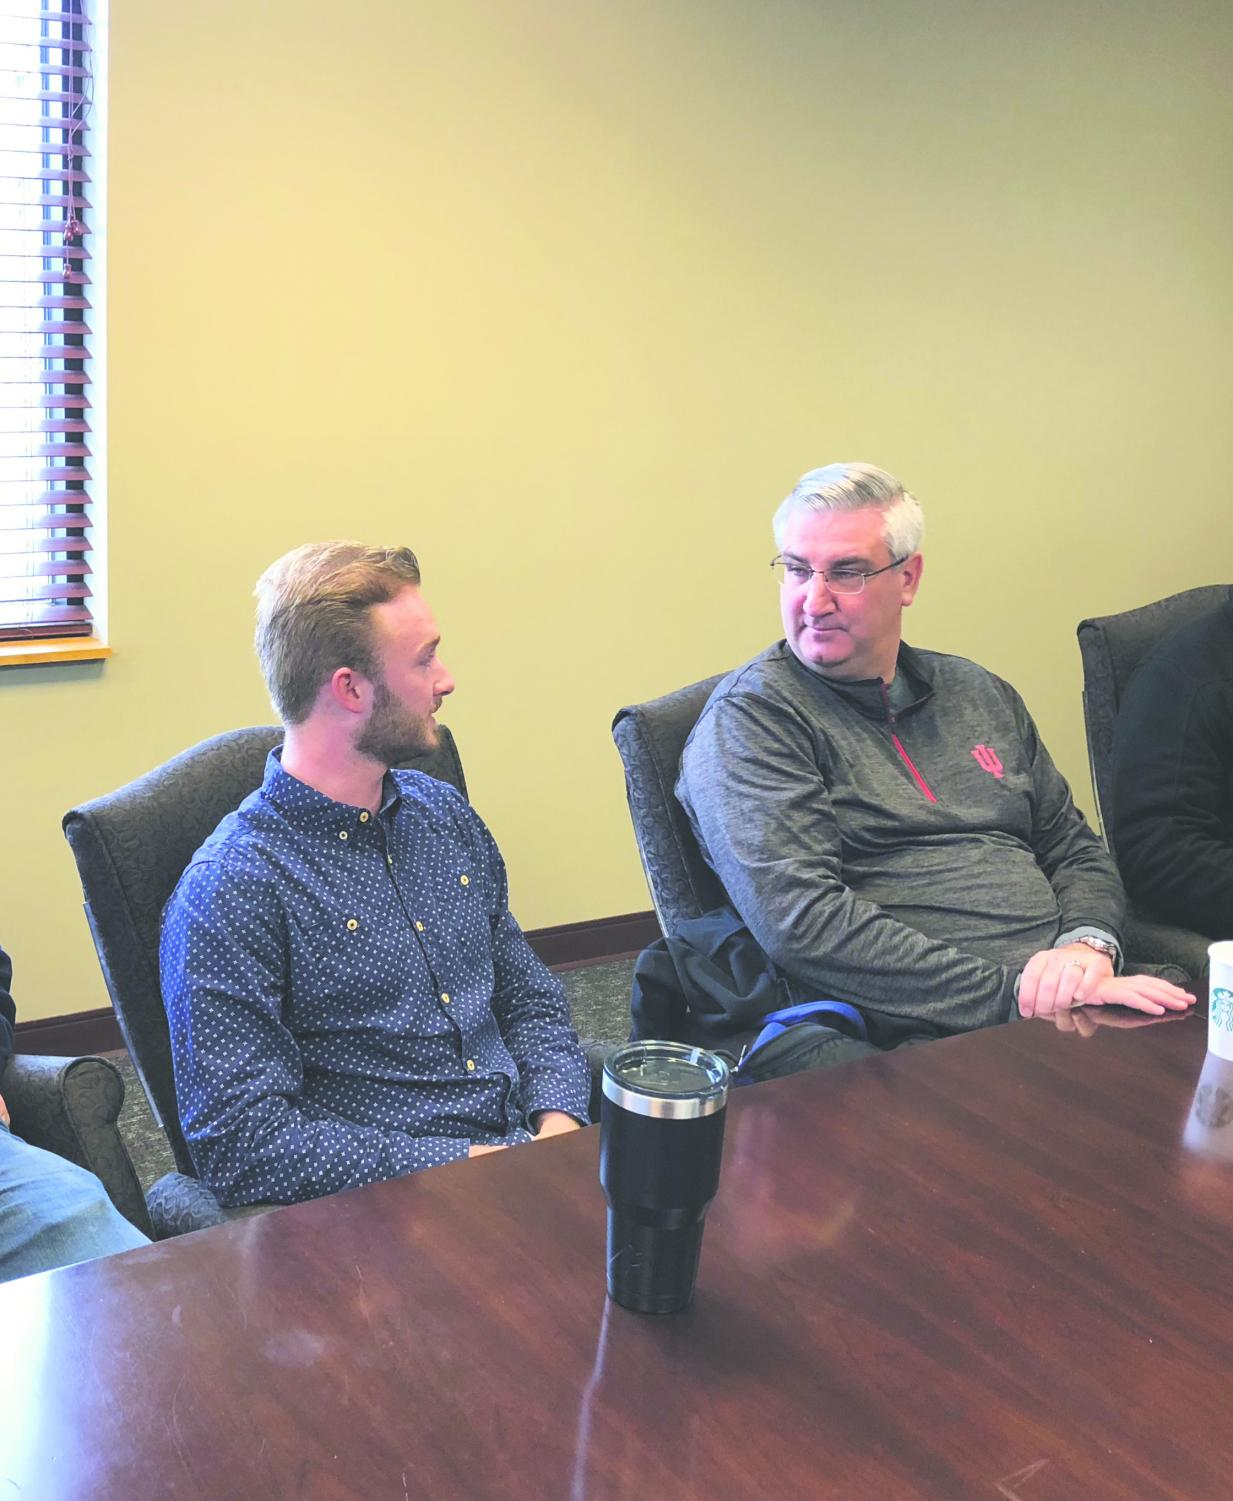 Roger Howard, chairman of the Federation of College Republicans, talks with Indiana Gov. Eric Holcomb during a meeting at IU Southeast on Saturday, April 7. Photo courtesy of Roger Howard.